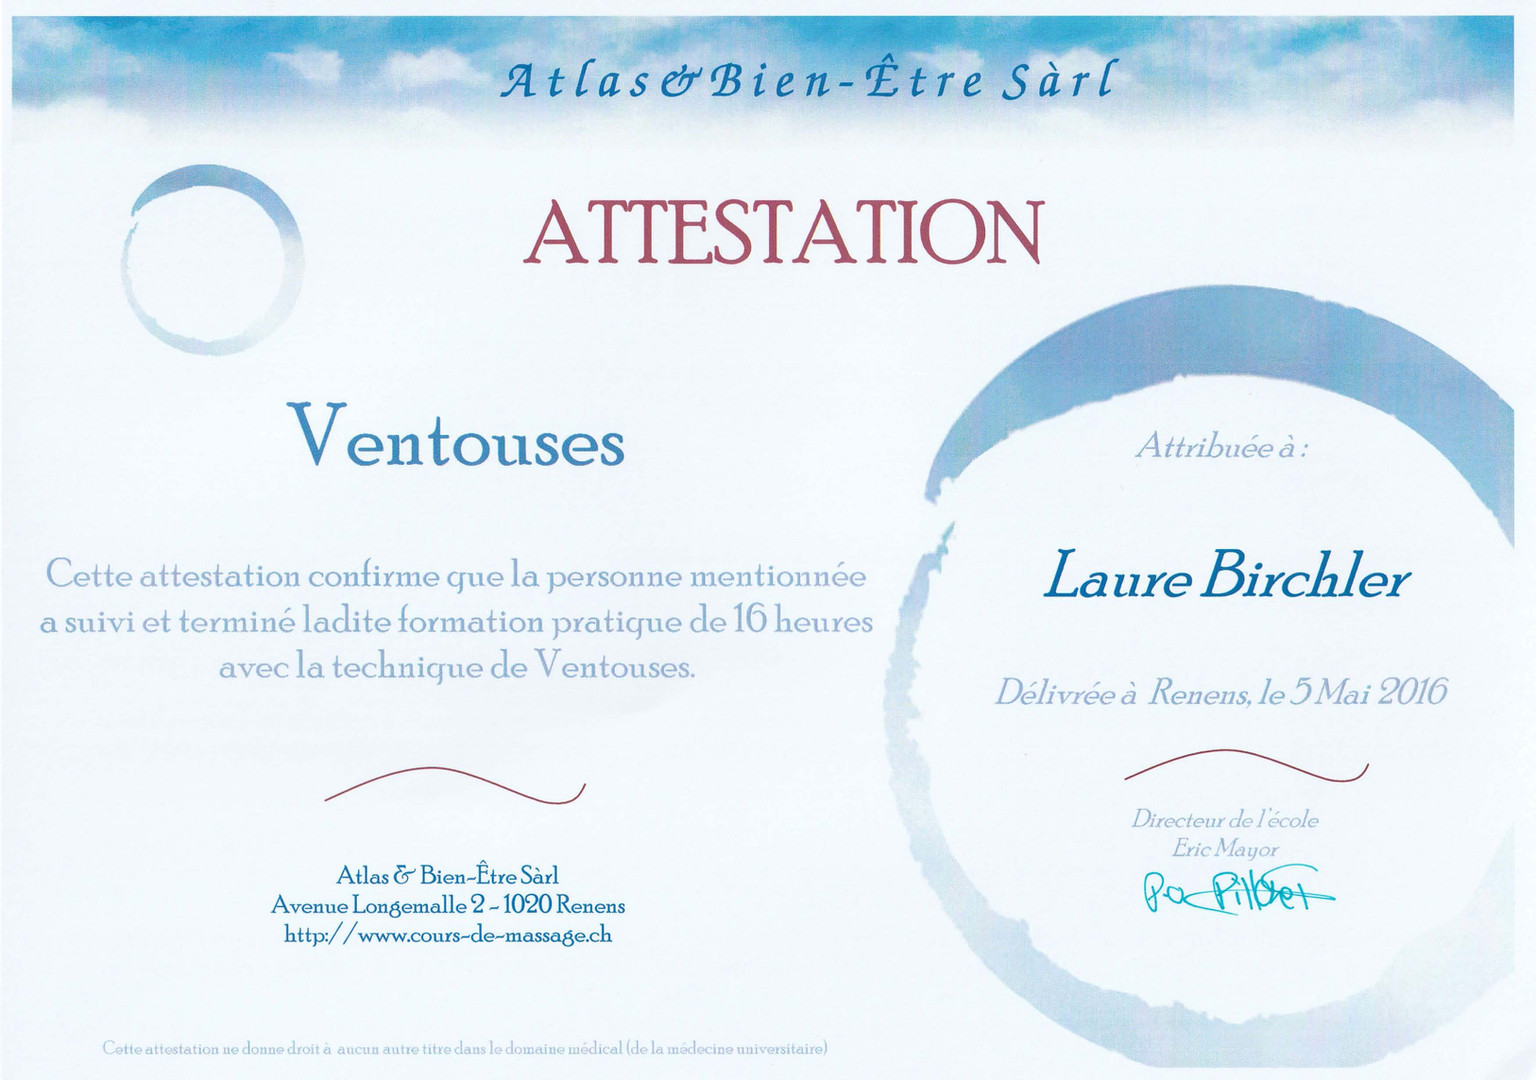 Attestation Ventouse.jpg